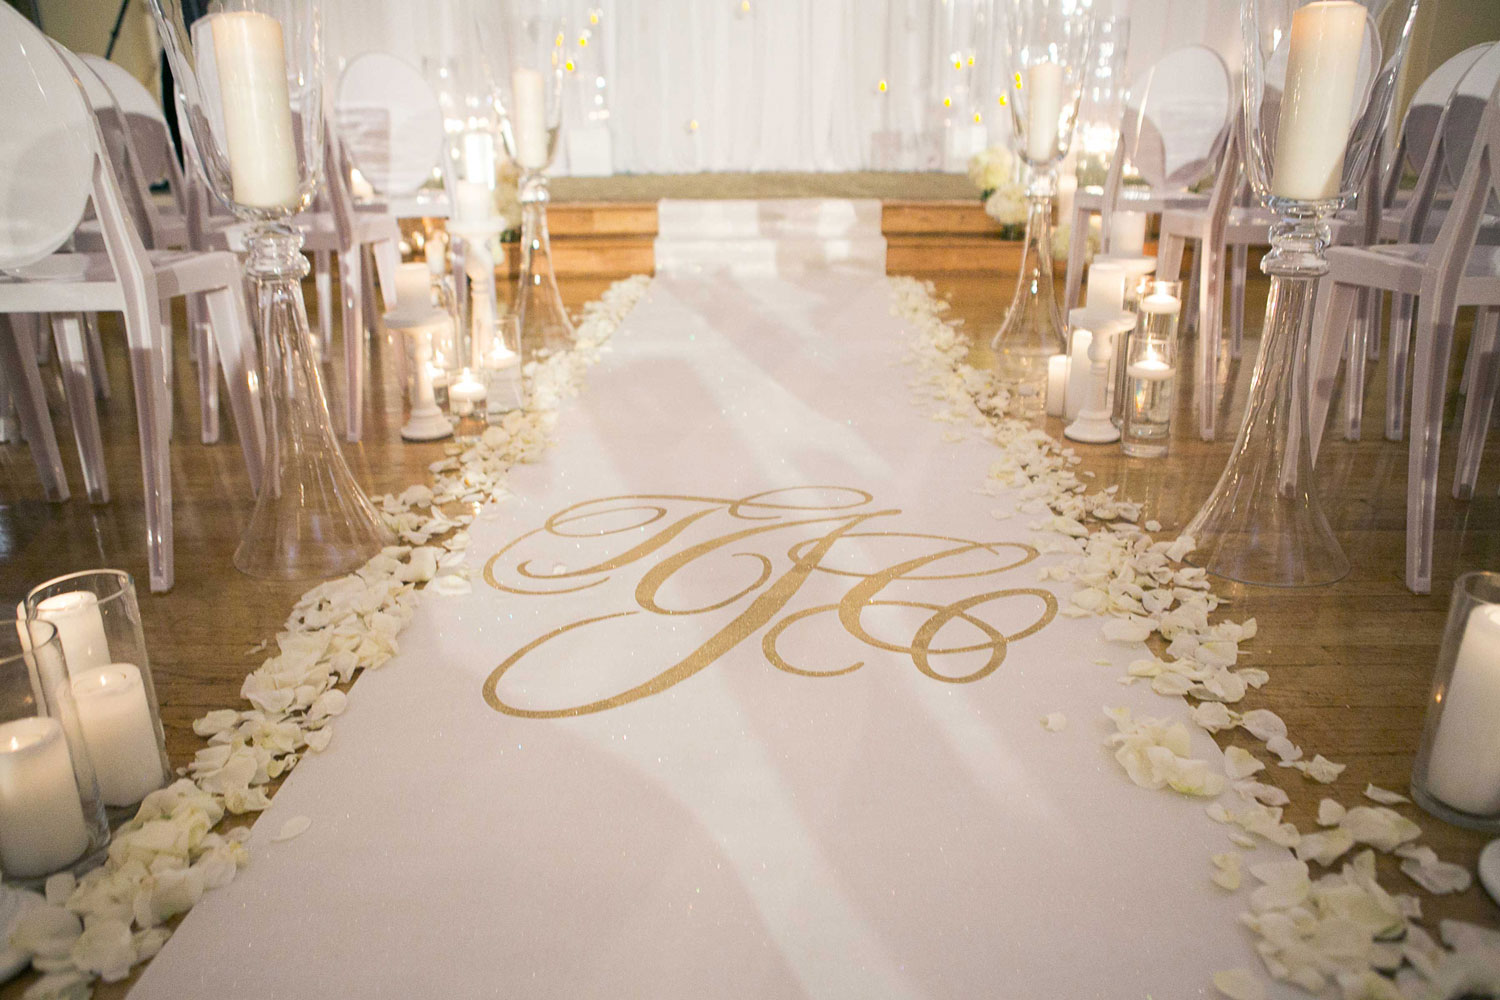 Hand painted aisle runner by The Original Runner Company